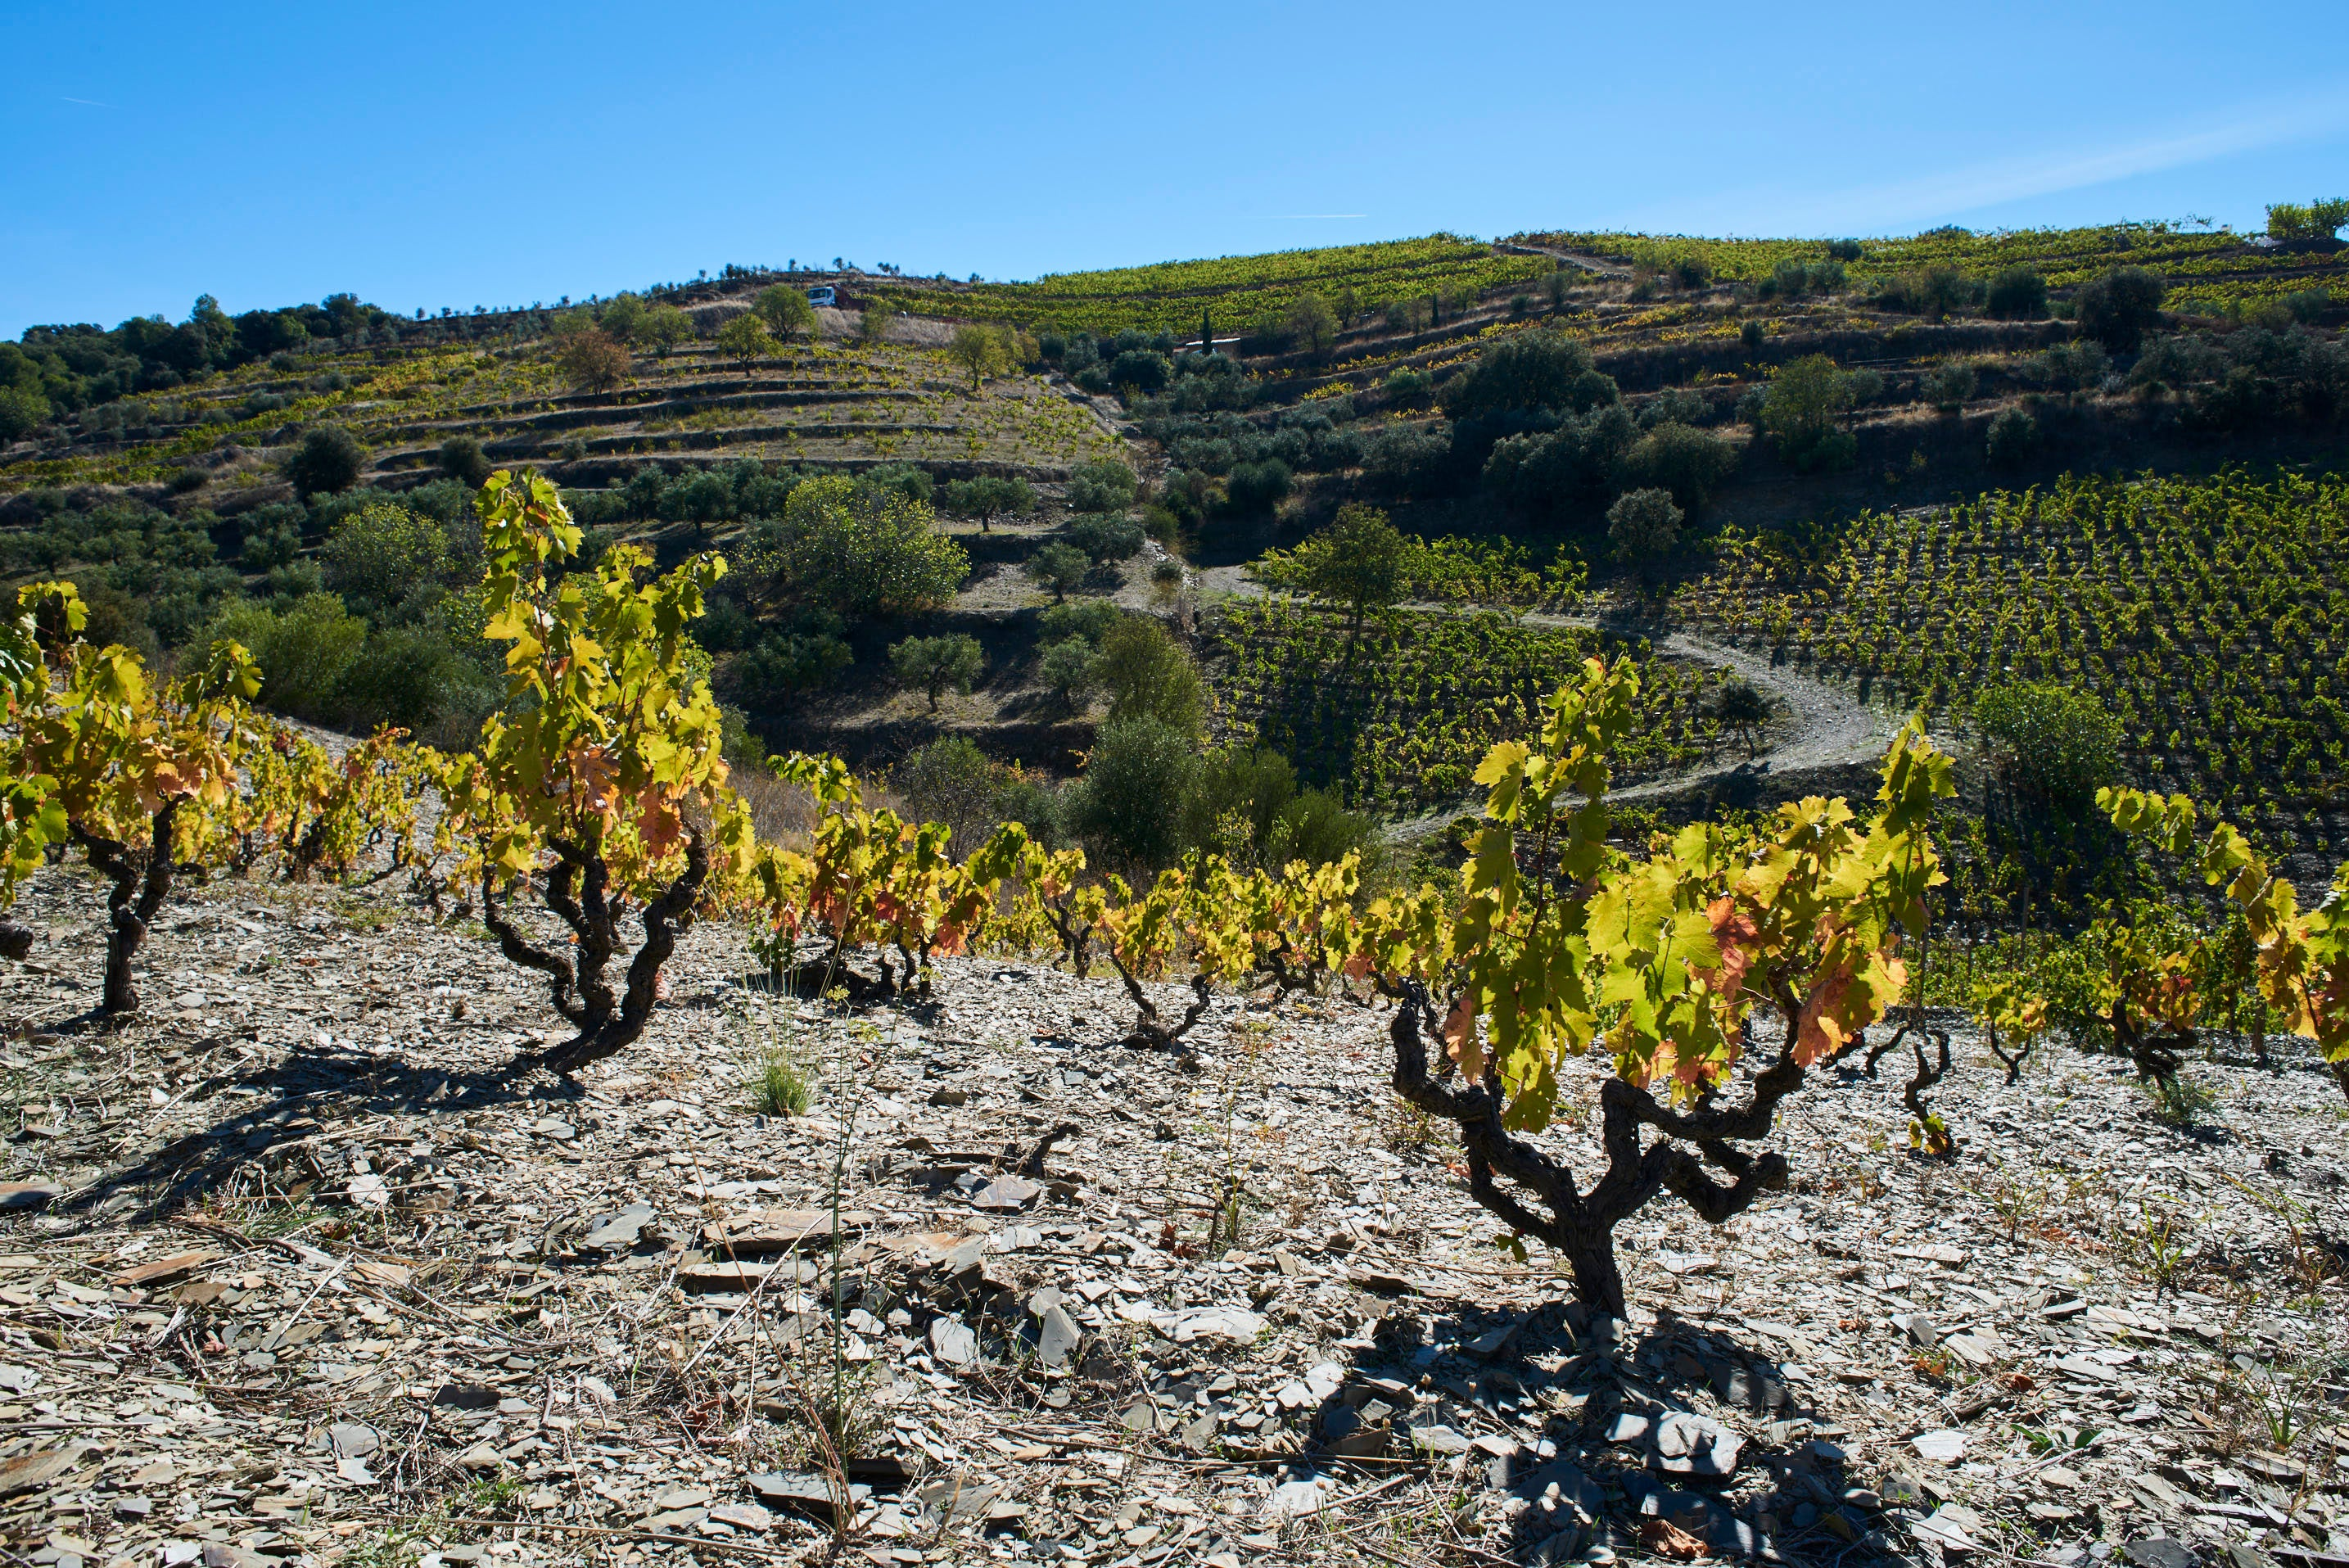 Priorat has steep vineyards and distinct licorella slate soil, but differences in picking times and winemaking result in a range of styles in the region.